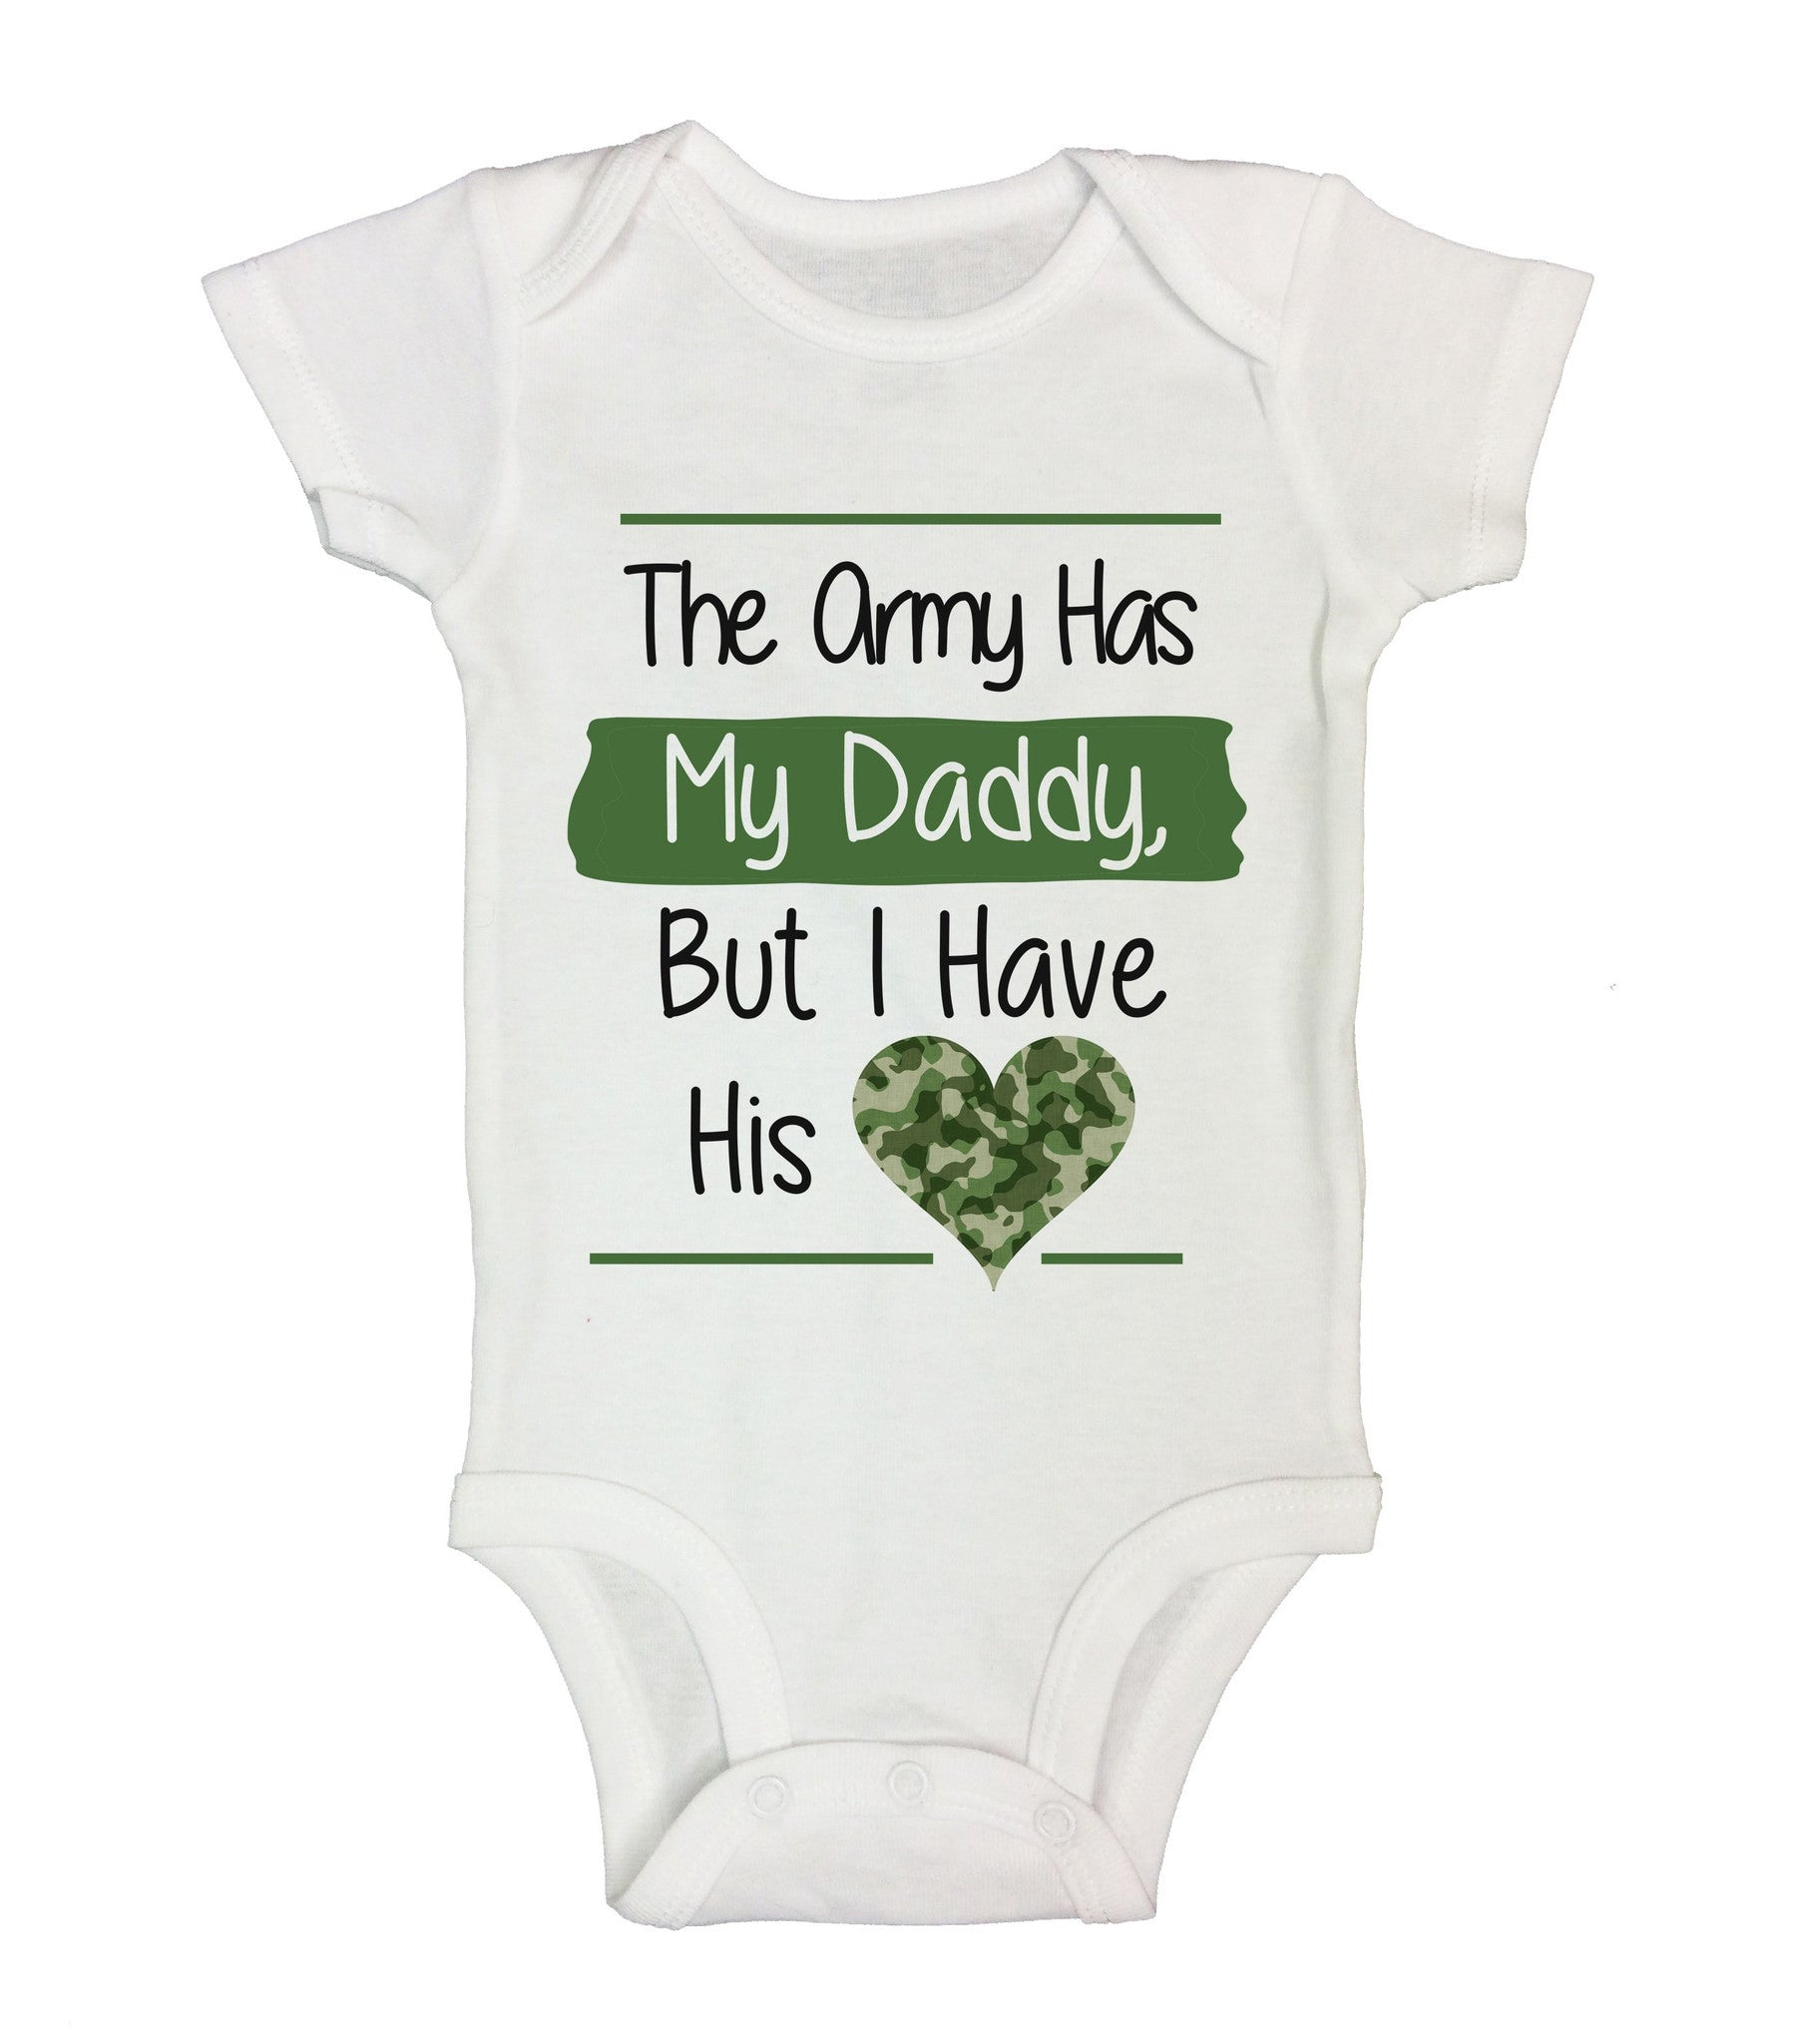 The Army Has My Daddy, But I Have His Love Funny Kids Onesie - B162 - Funny Shirts Tank Tops Burnouts and Triblends  - 2